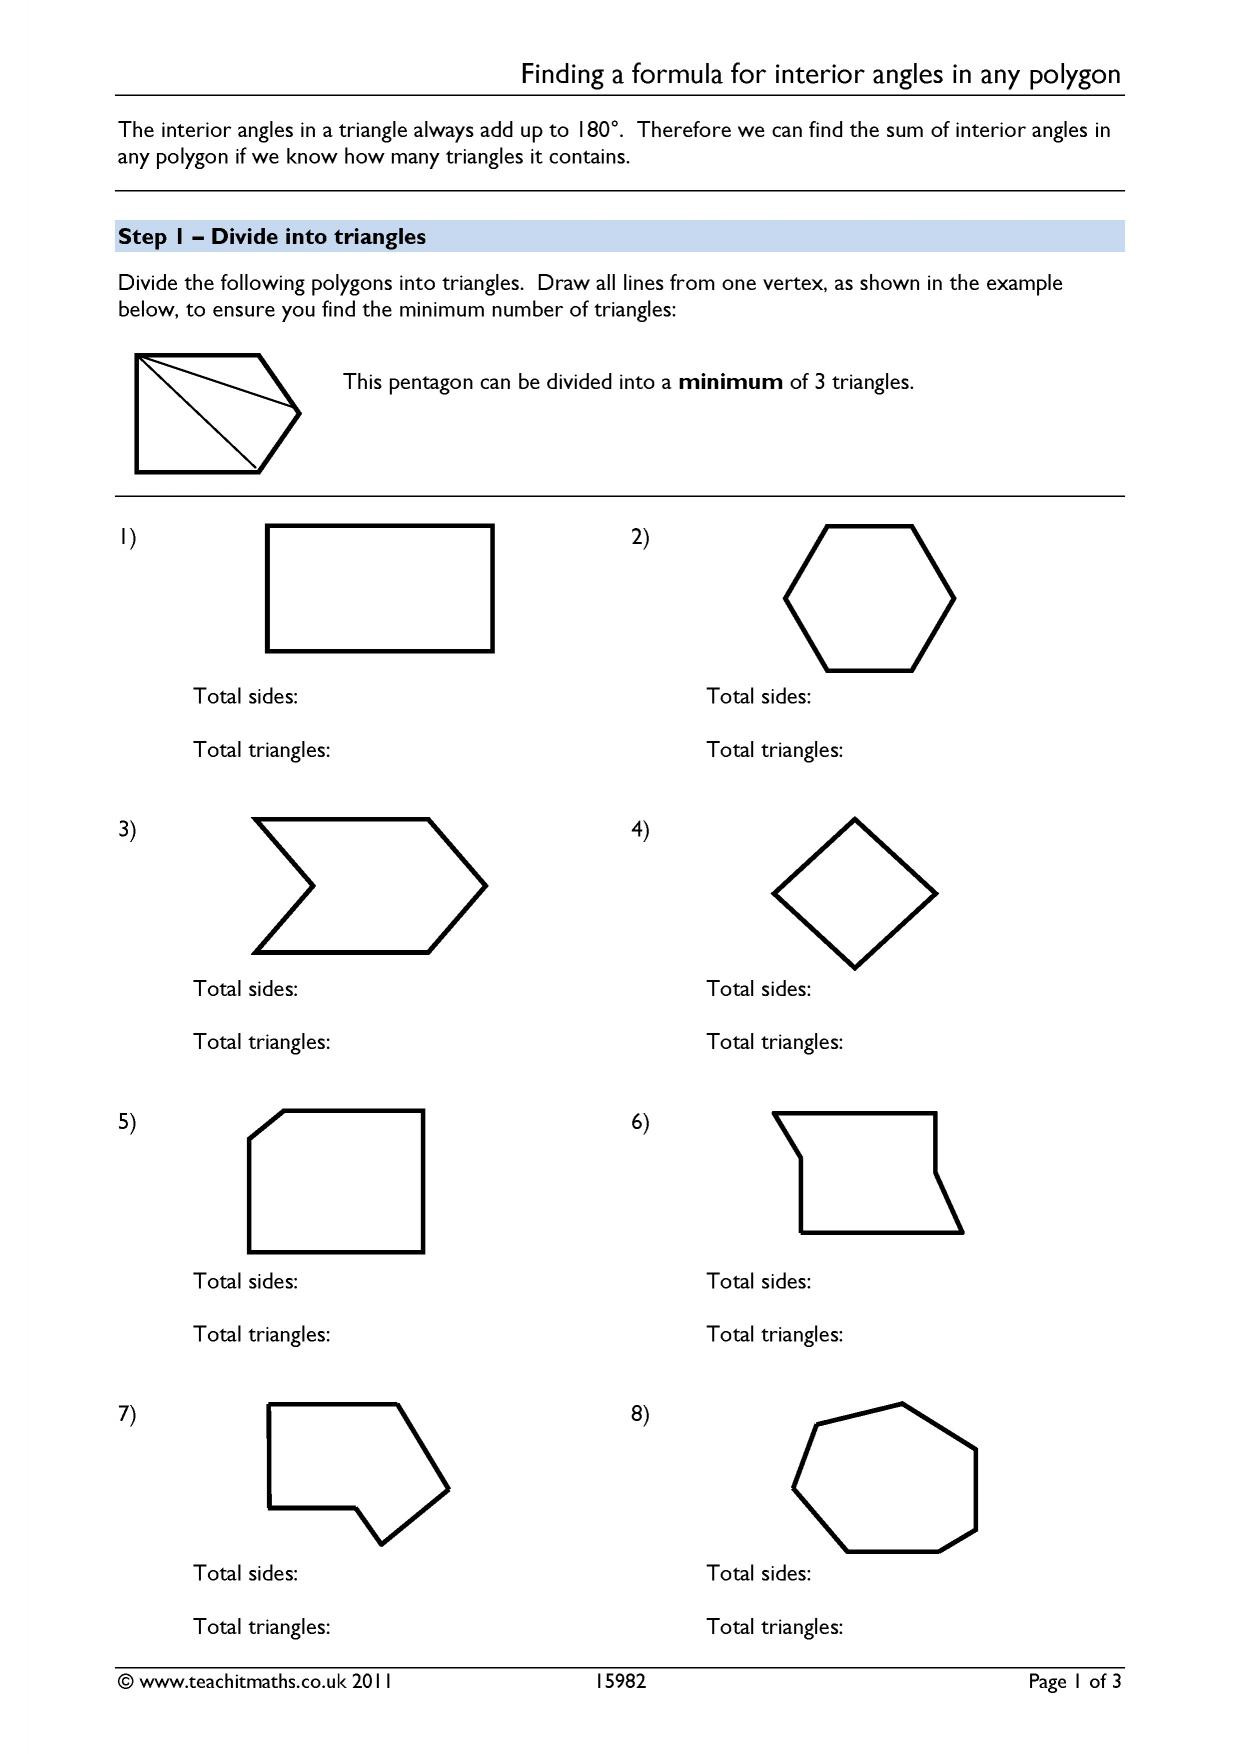 30 Triangle Angle Sum Worksheet